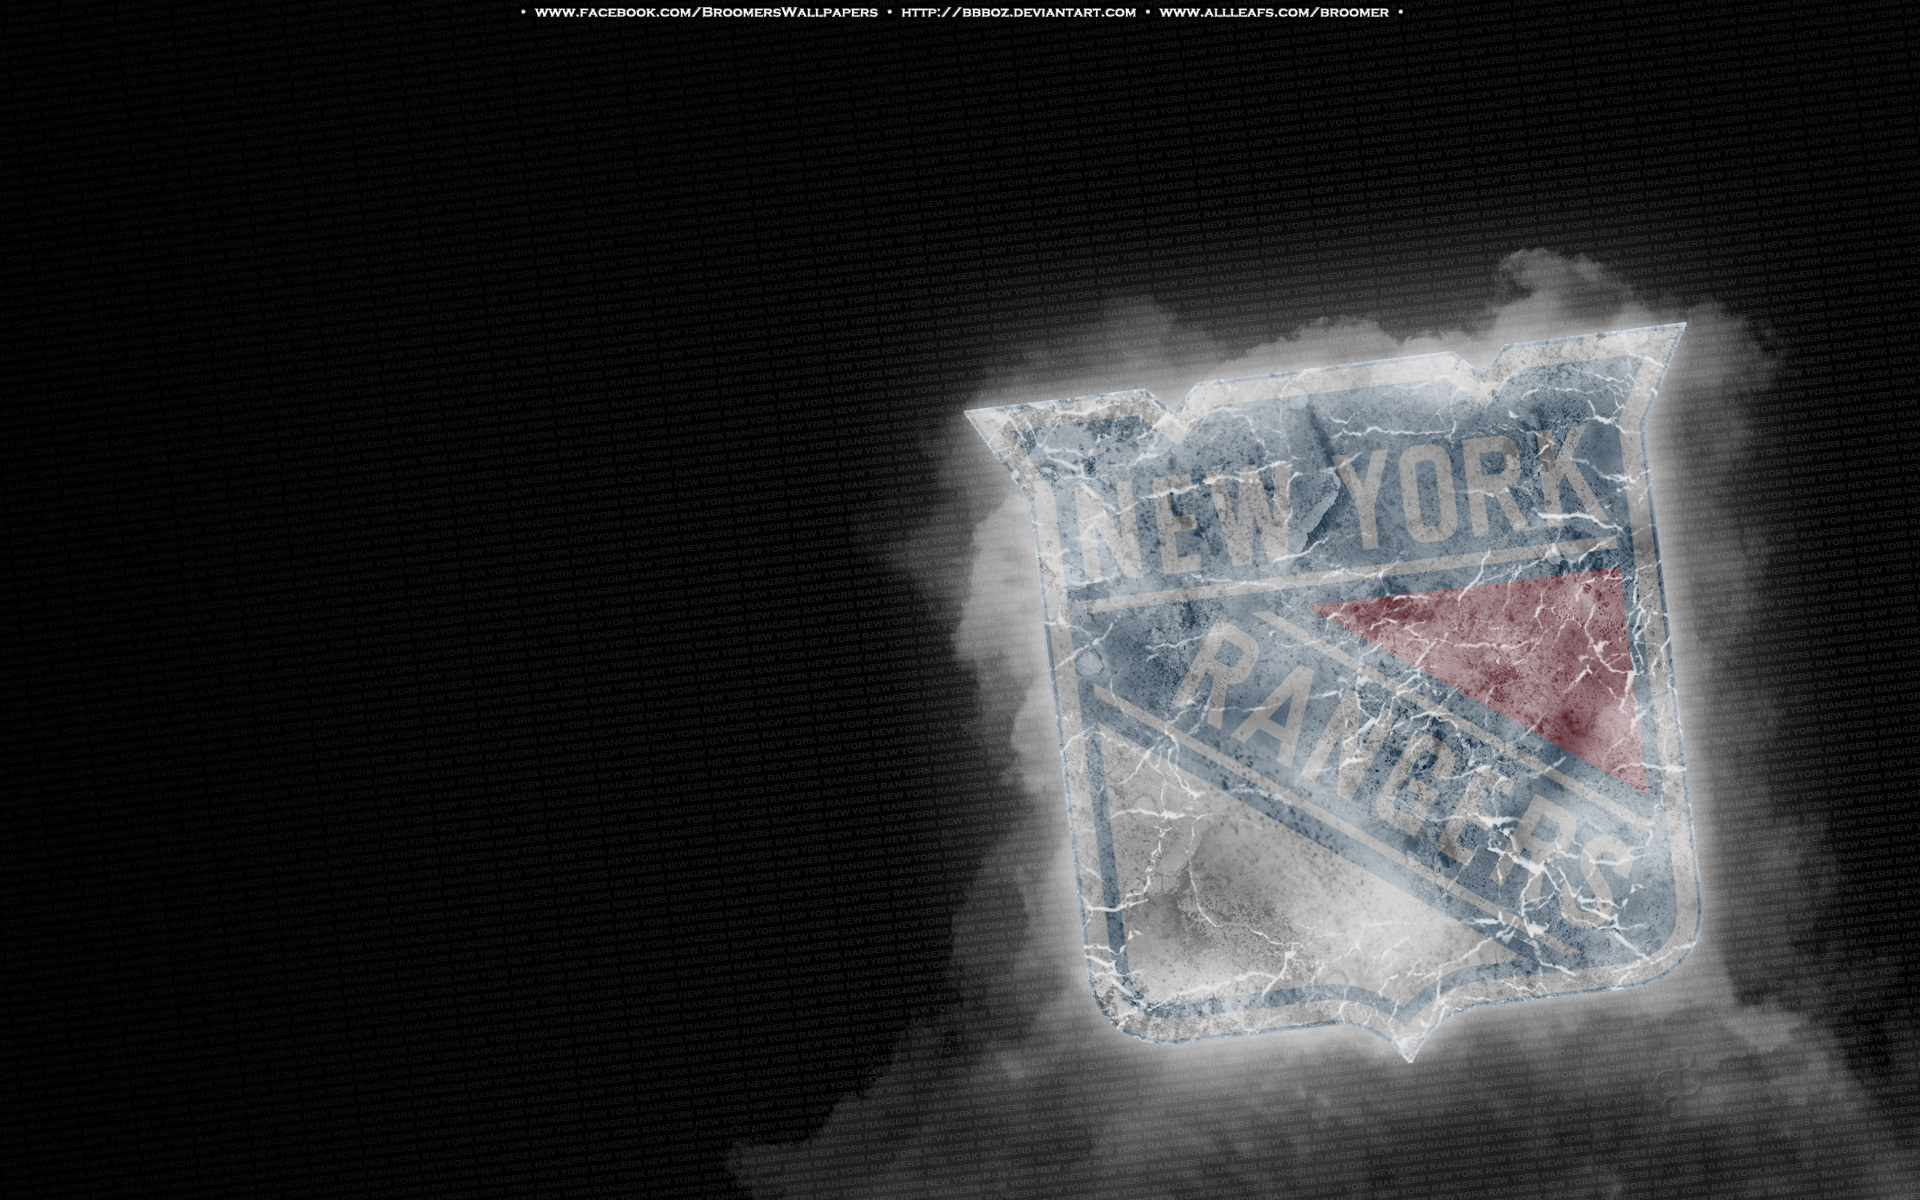 New York Rangers Wallpaper Posted By Michelle Johnson